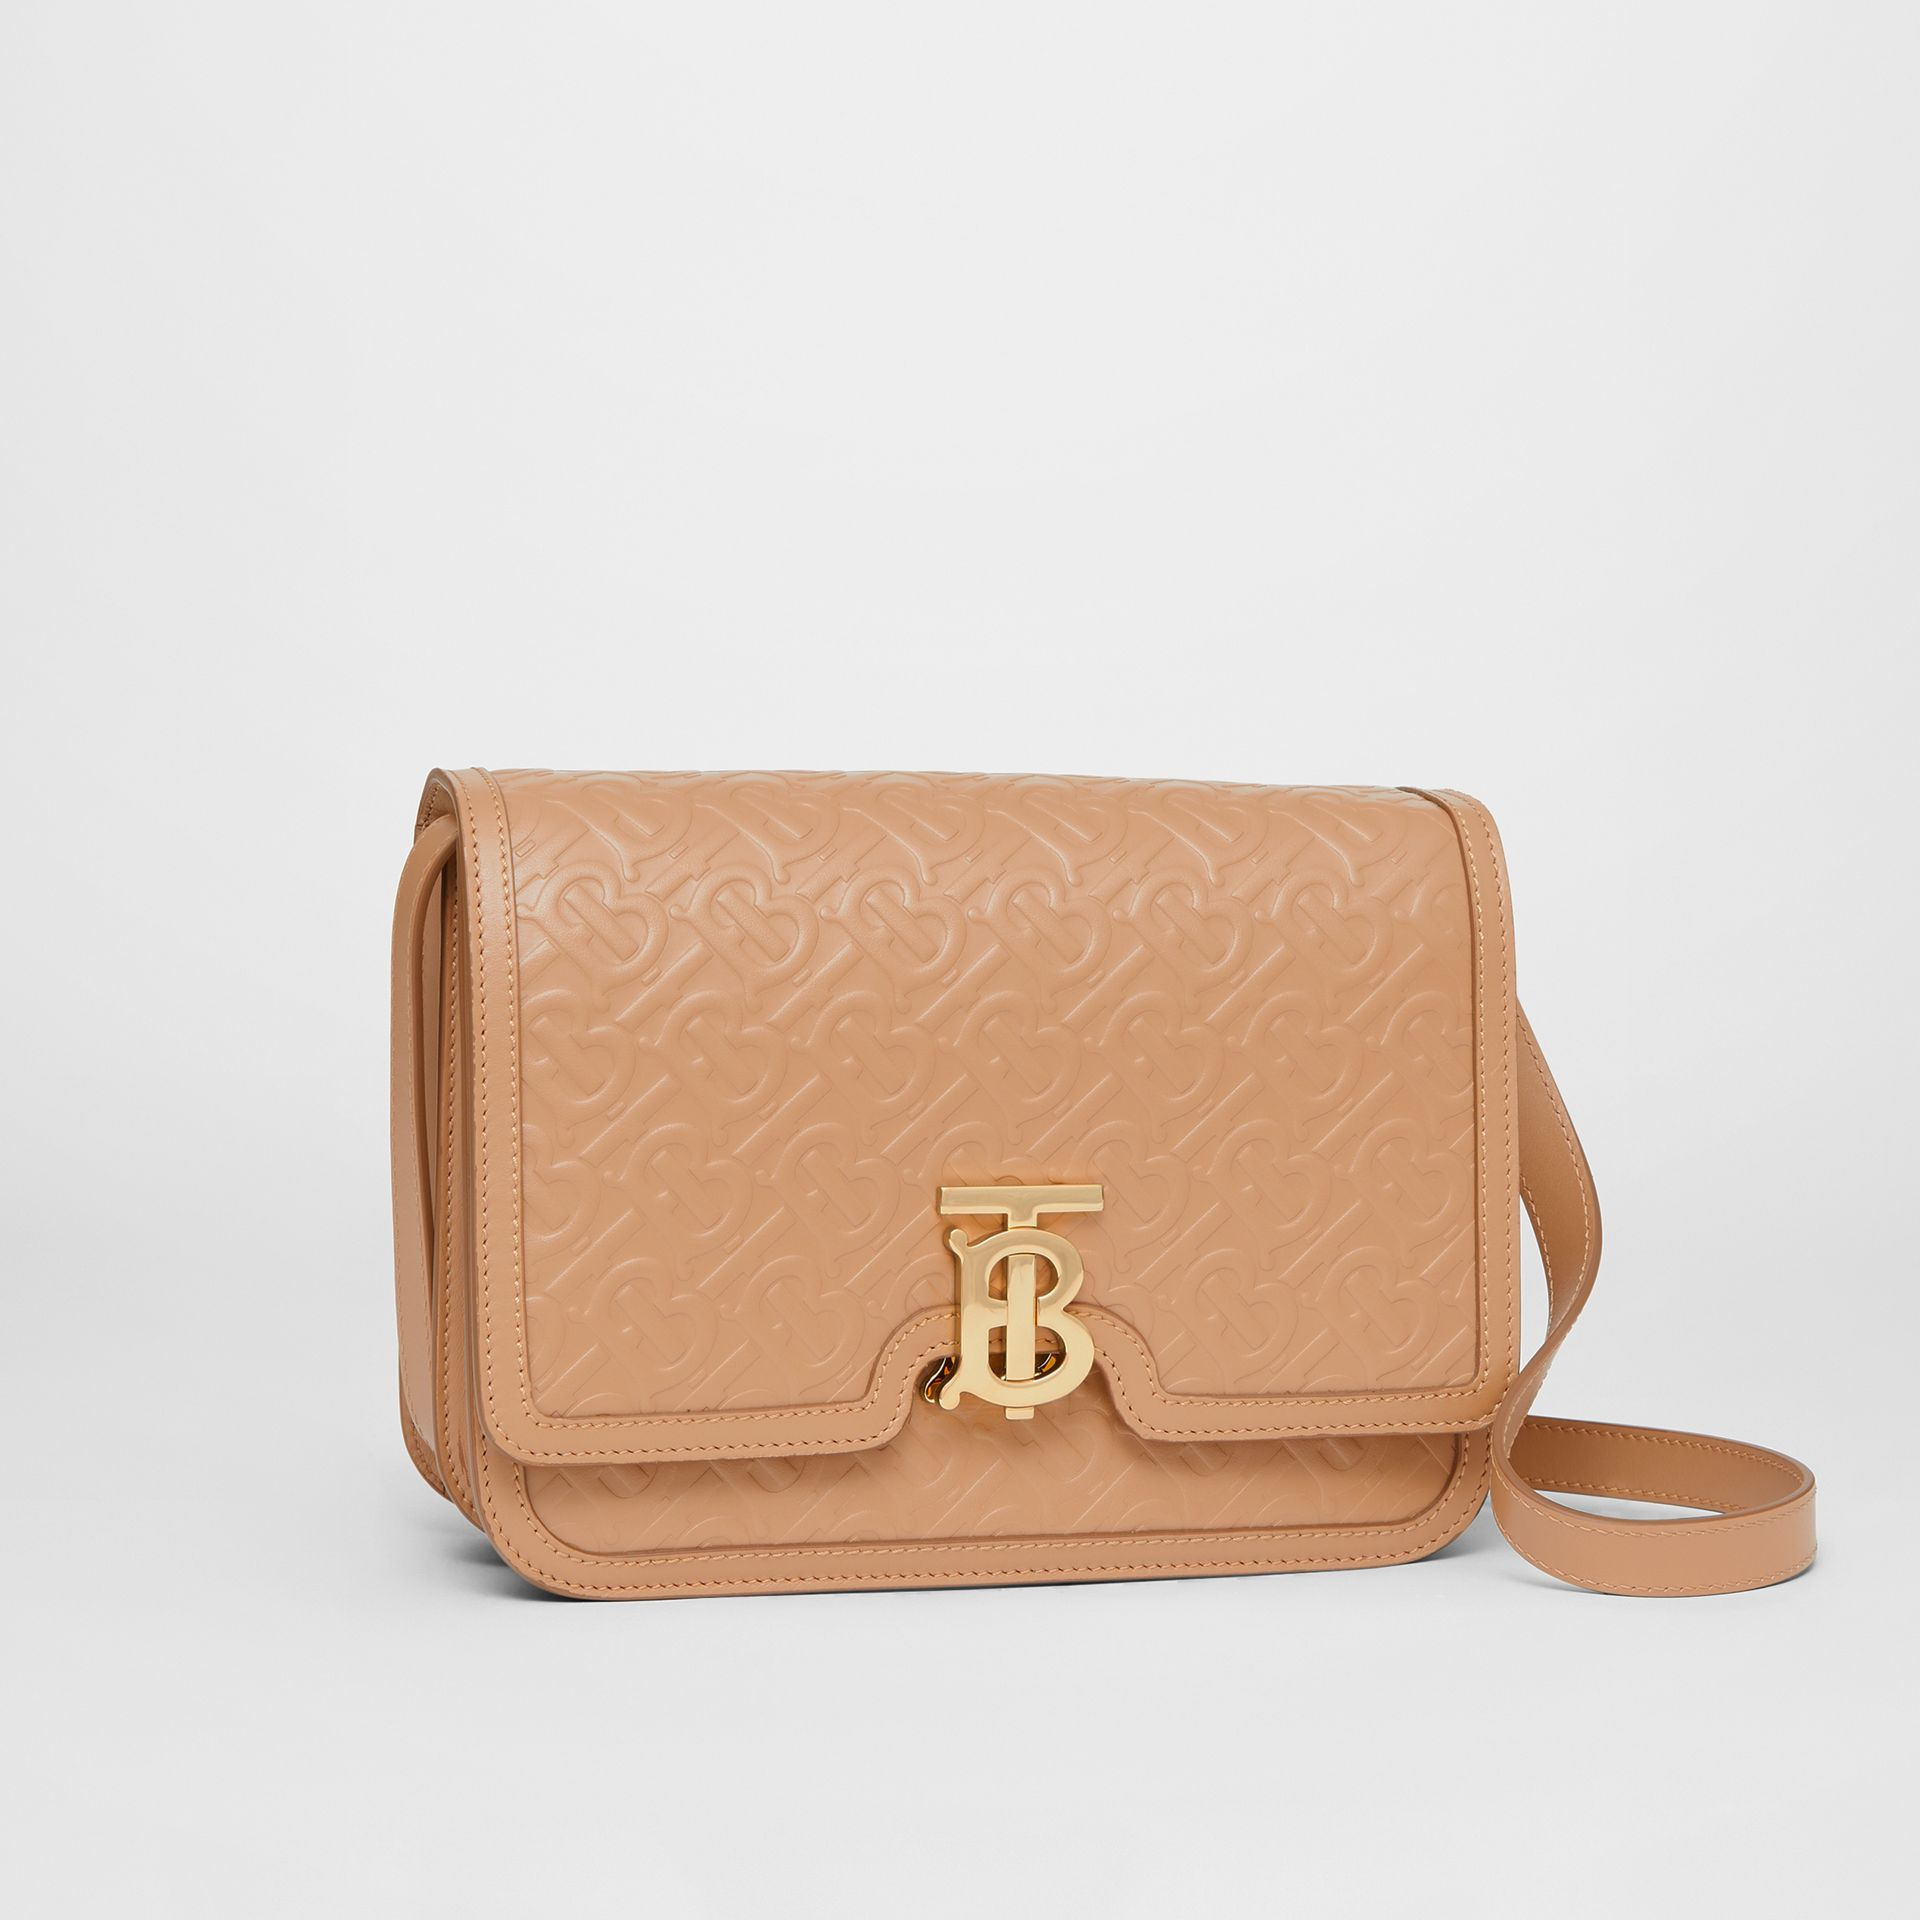 Medium Monogram Leather TB Bag in Light Camel - Women | Burberry Australia - gallery image 6